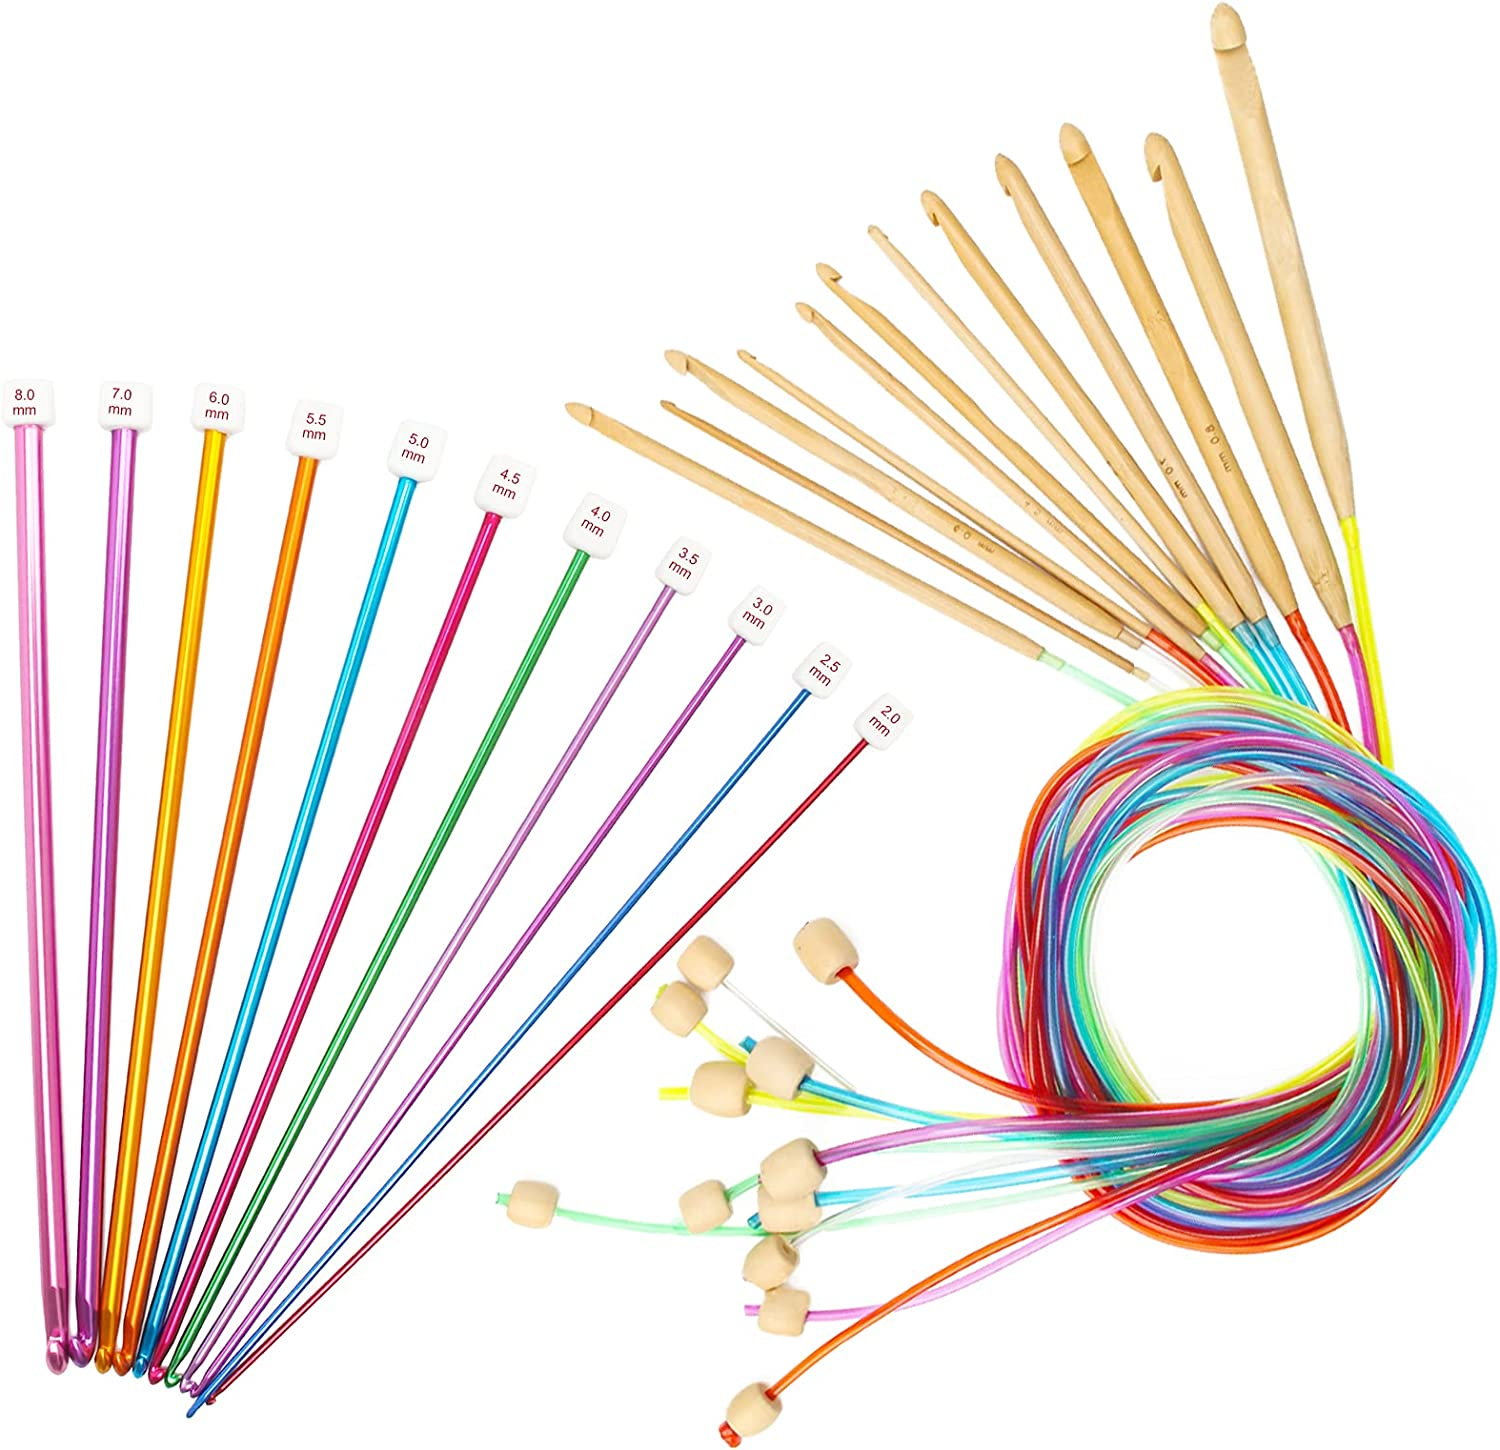 Tunisian At the Attention brand price of surprise Crochet Hooks Set 23 12 Colorful Pcs 3-10mm Luxiv